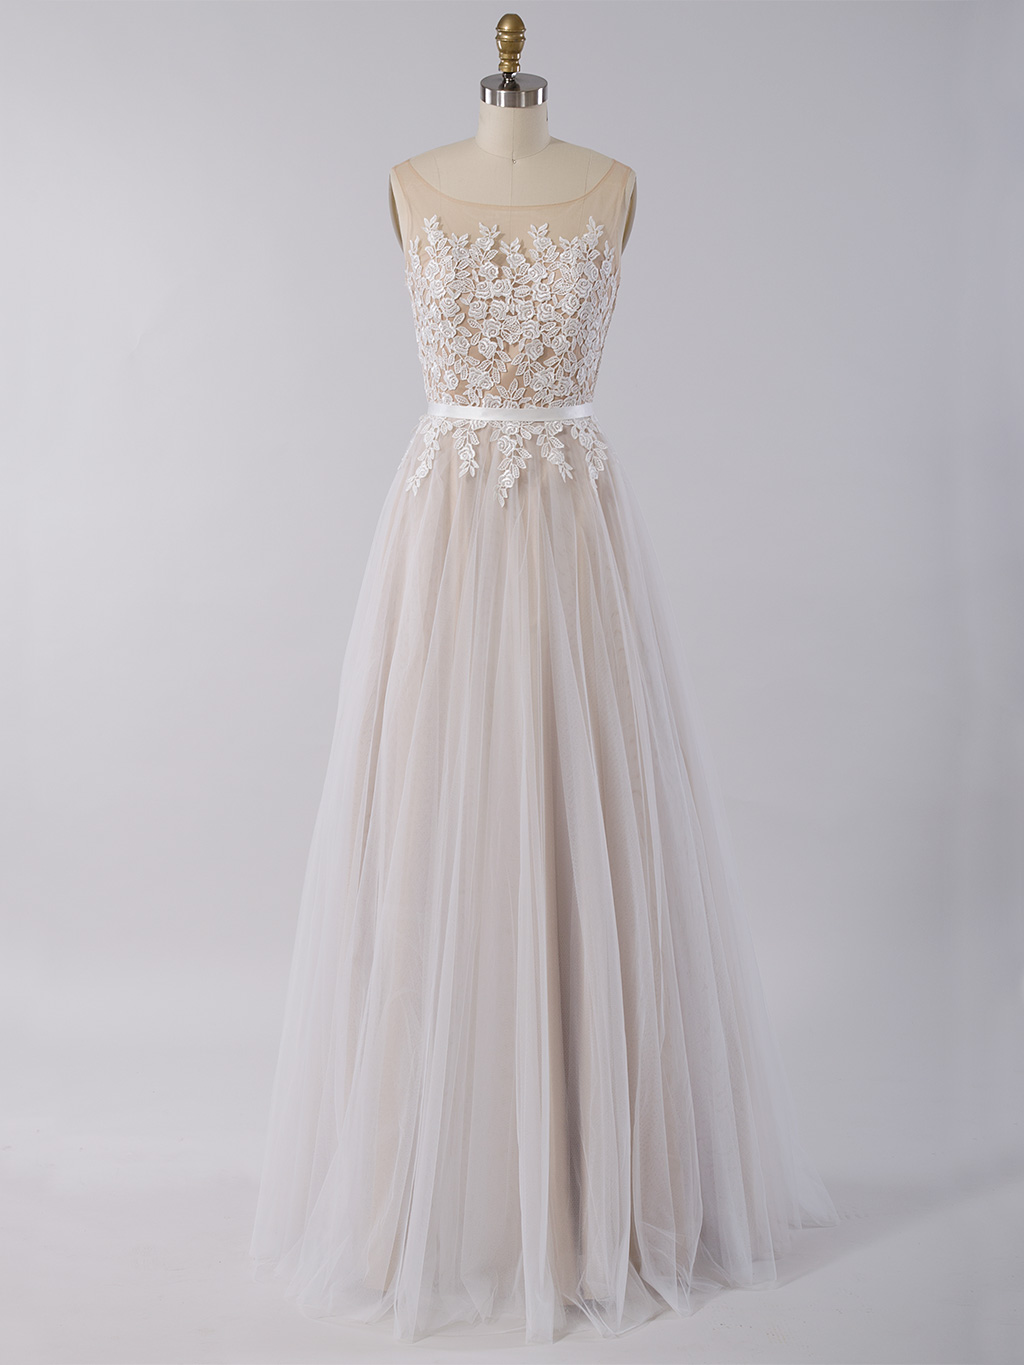 Sleeveless lace wedding dress with tulle skirt 4026